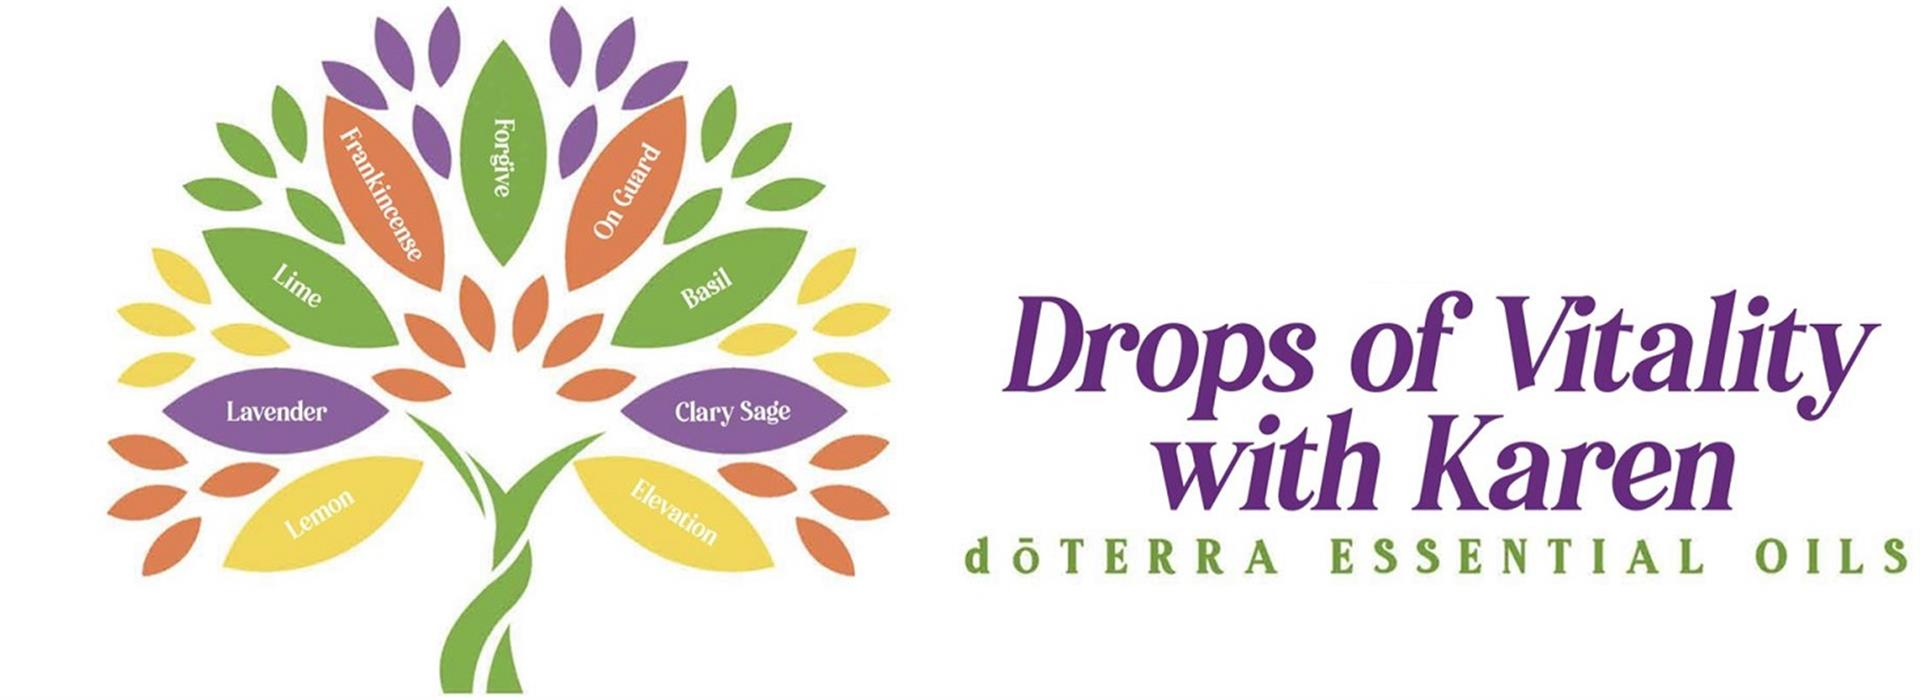 Drops of Vitality with Karen  logo